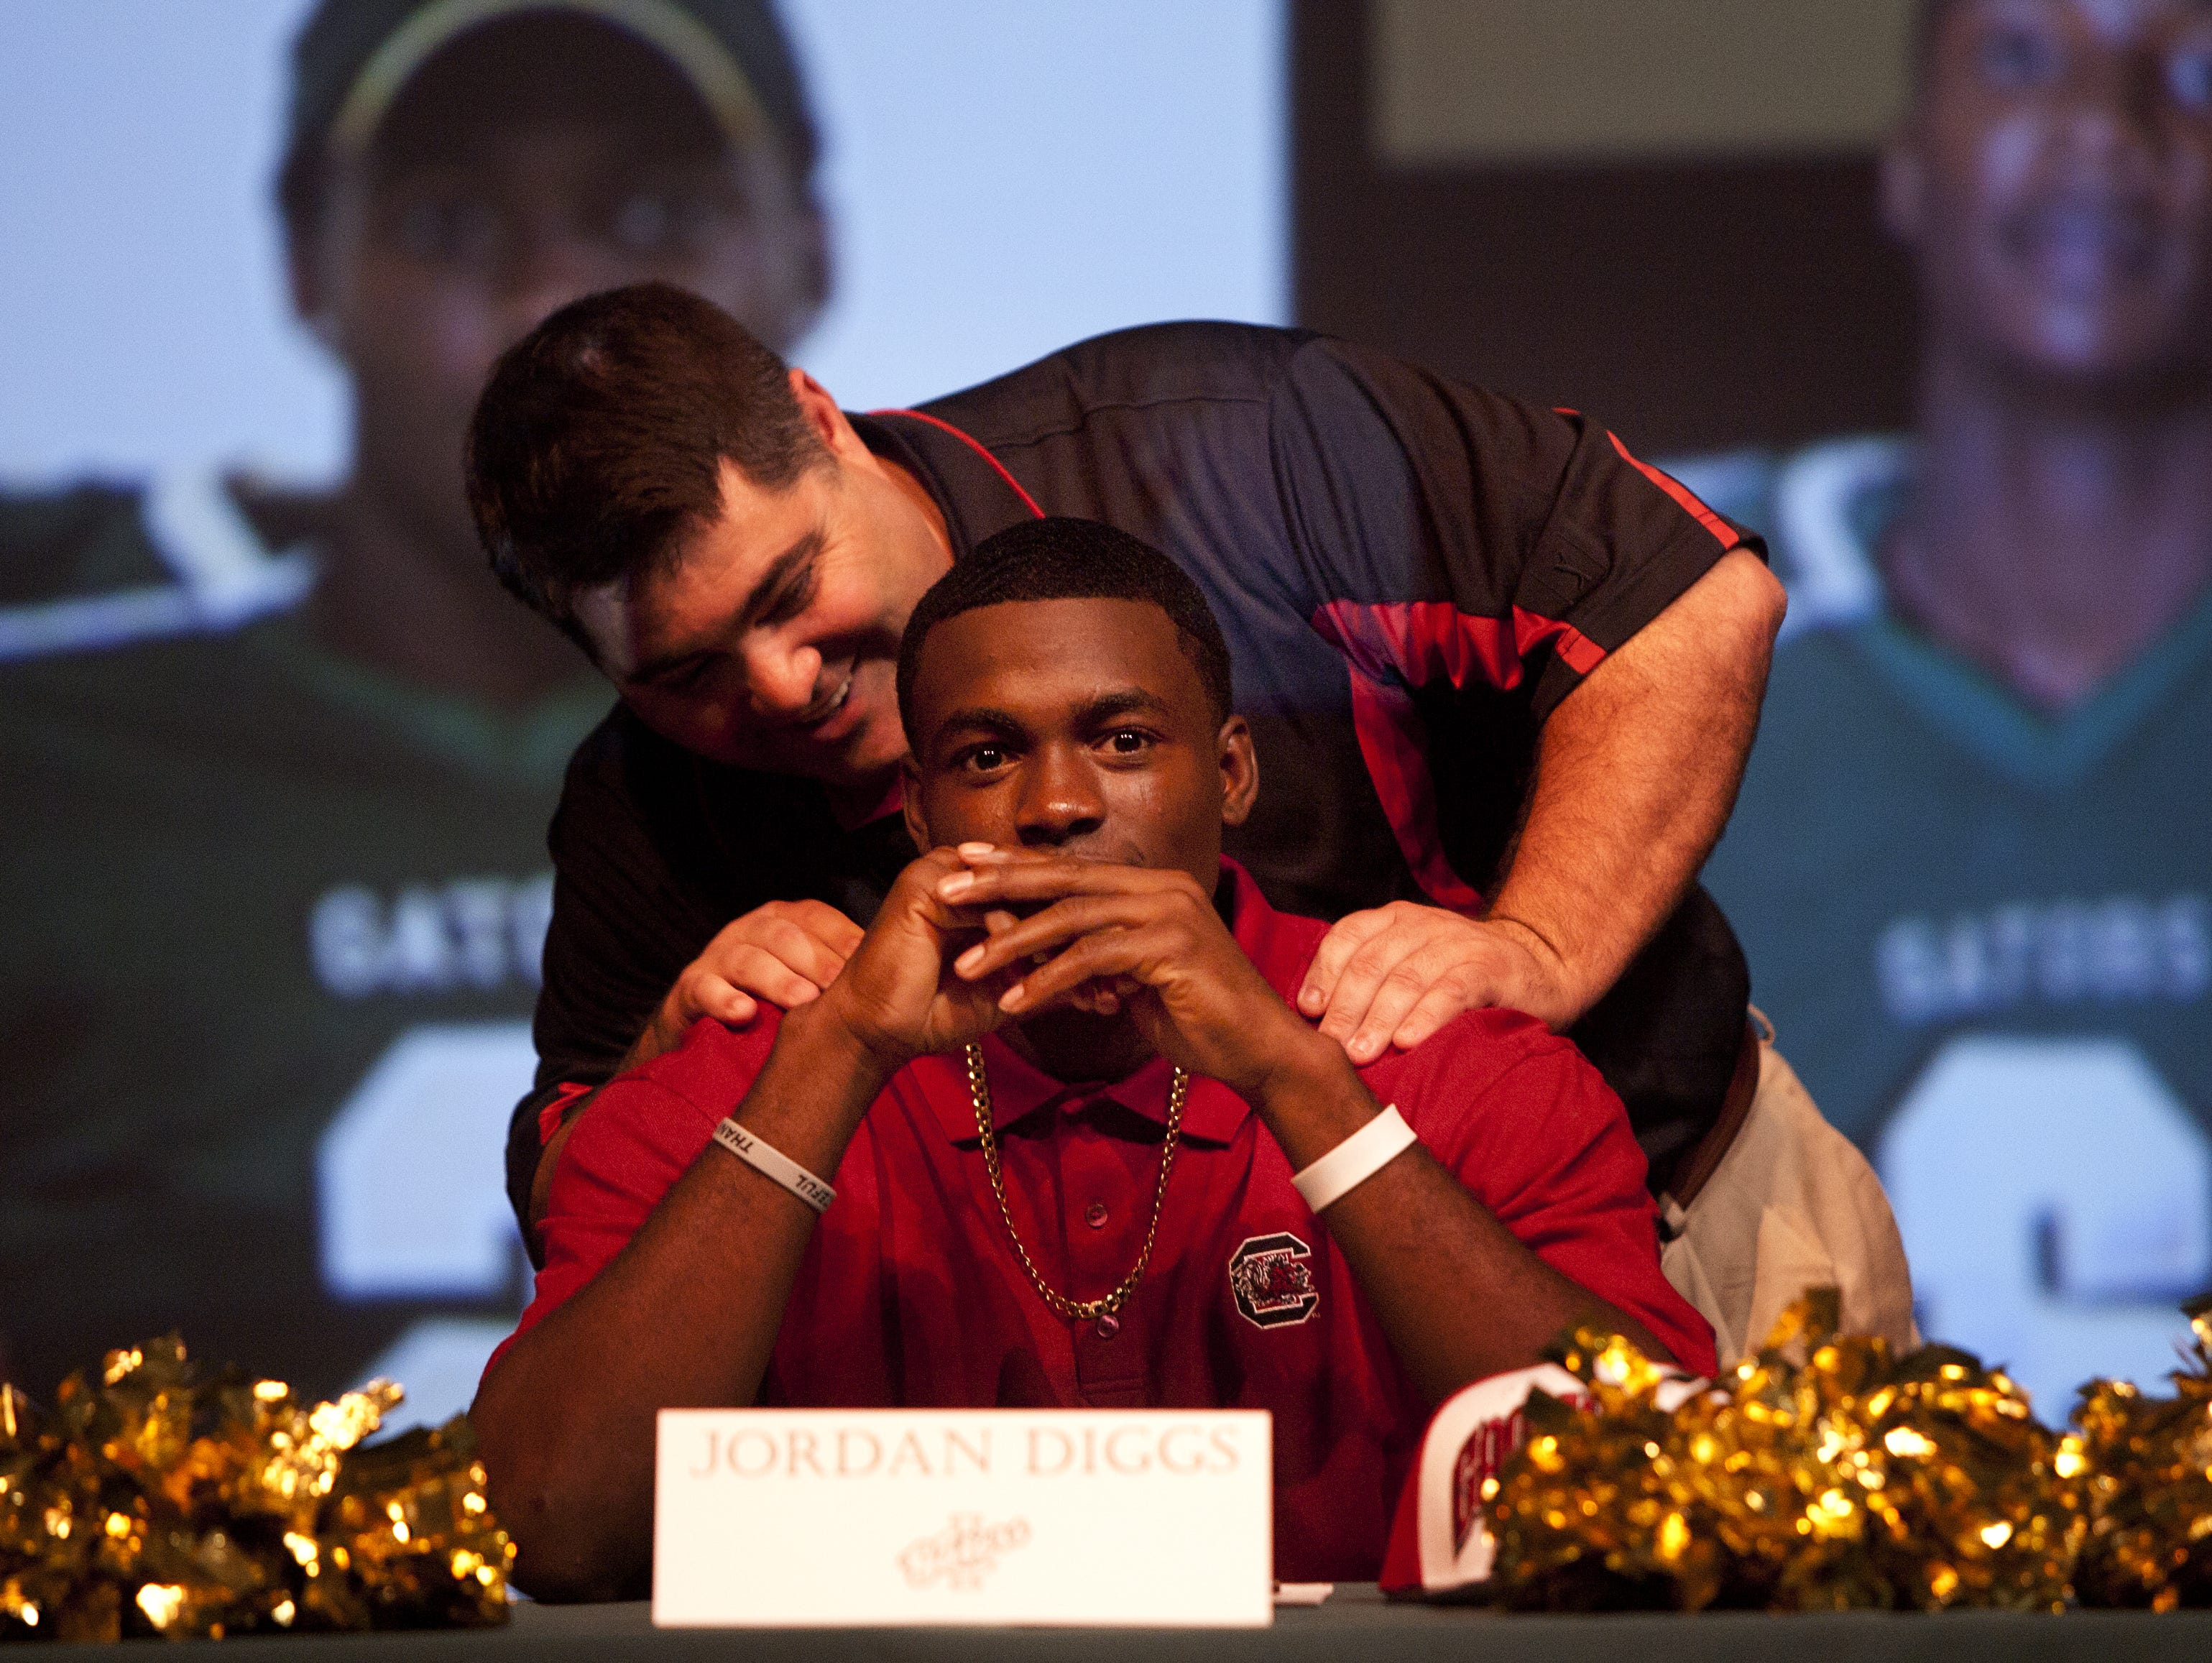 Island Coast High School football coach Joe Bowen speaks with Jordan Diggs before the start of the National Signing Day Ceremony at the school on Wednesday 2/1/2012. Diggs, who has experinced a huge amount of adveristy in his life, including watching his mother's boyfriend gunned down by an intruder in their house 6 days ago. He signed with South Carolina.